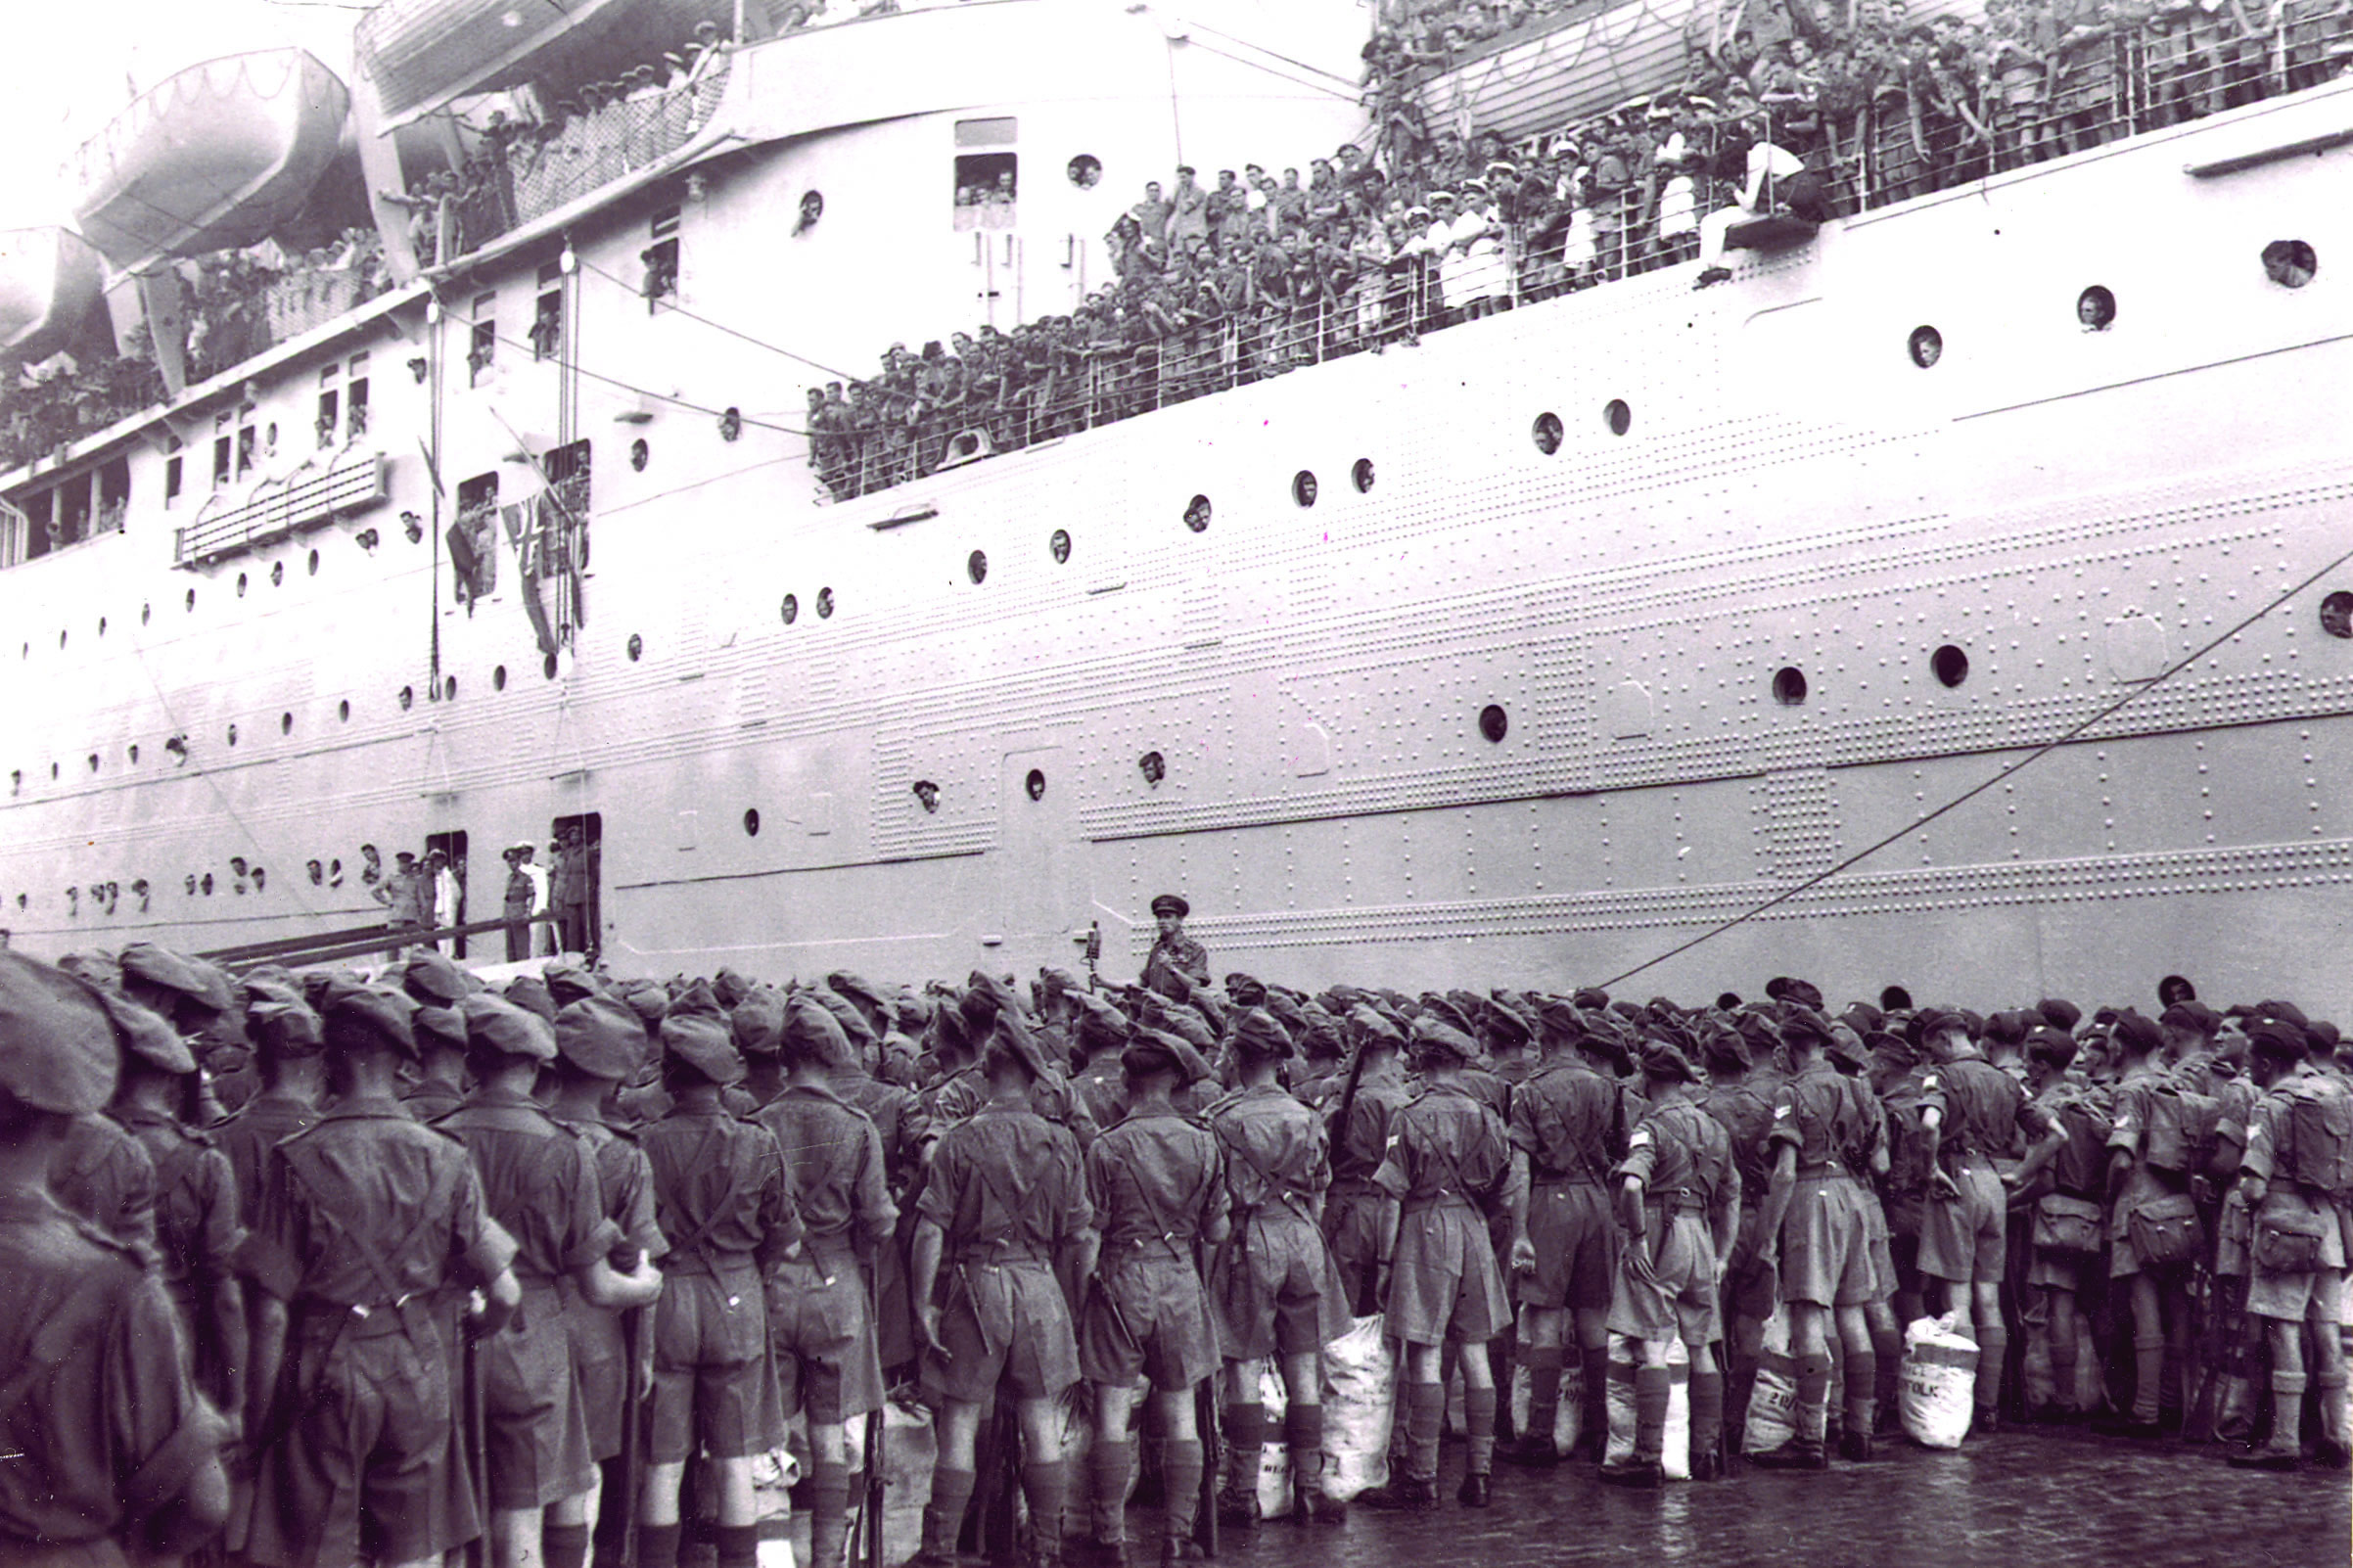 British troops leaving India